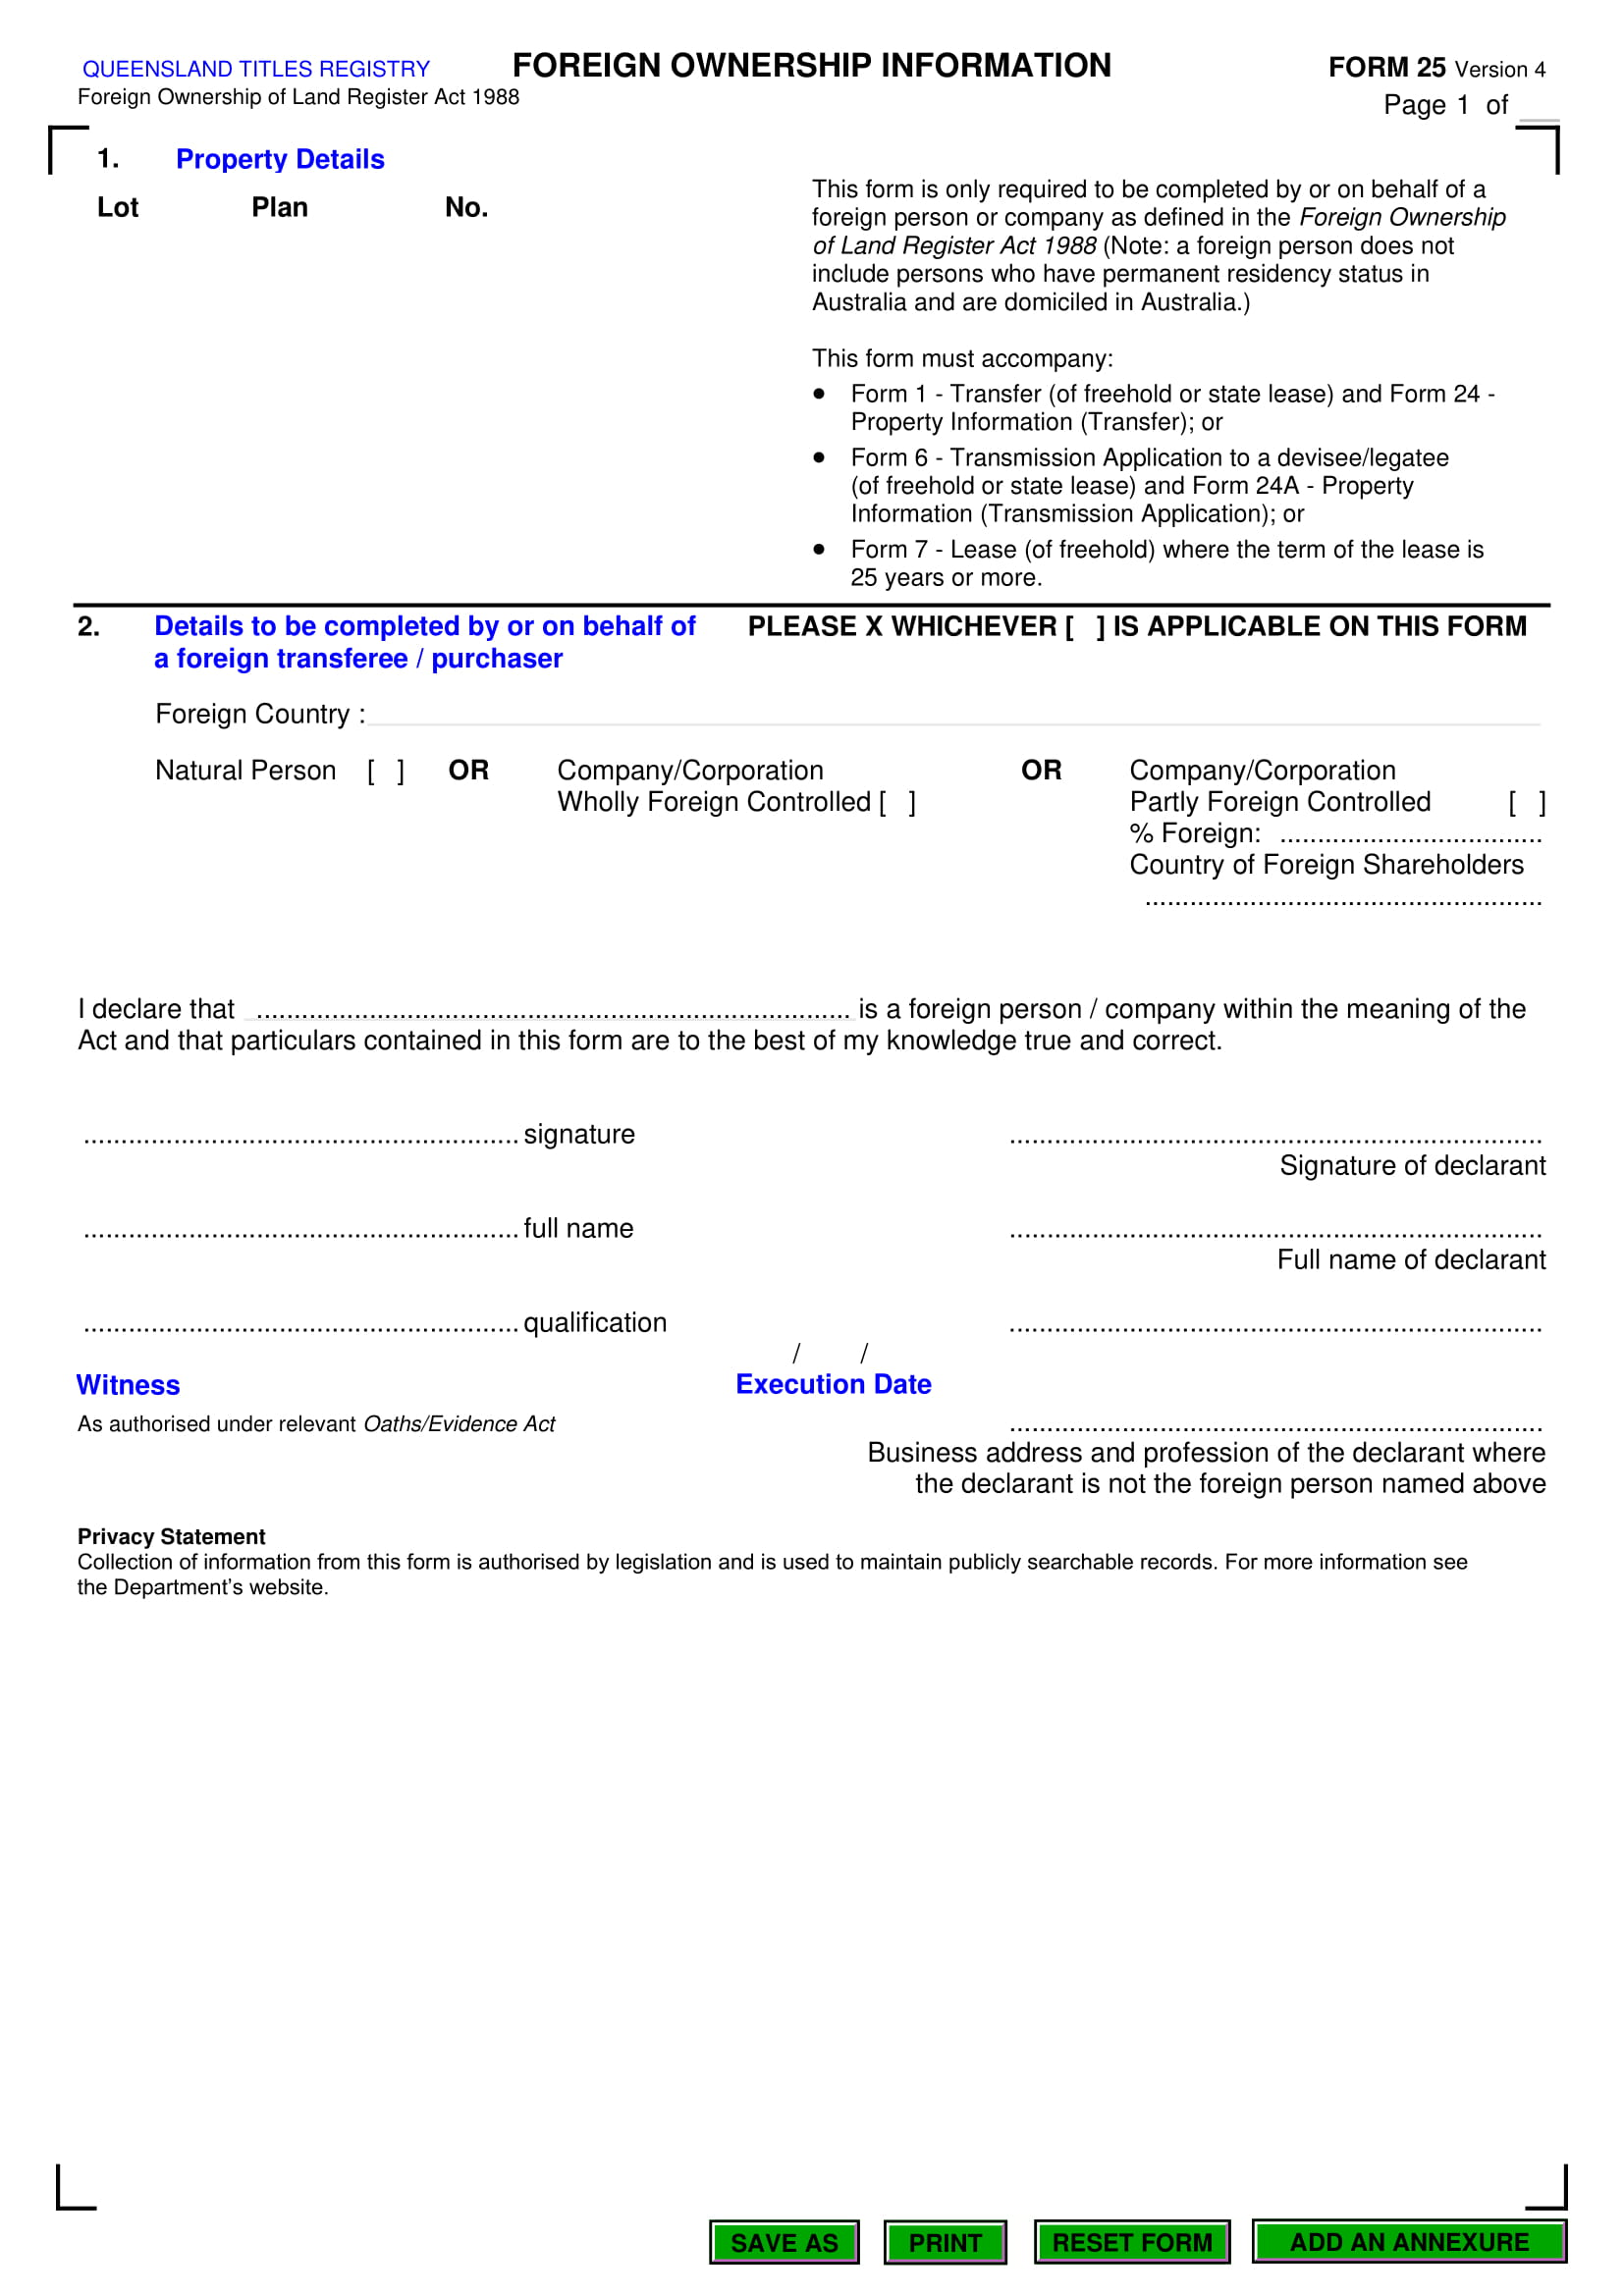 legal foreign ownership information form 1